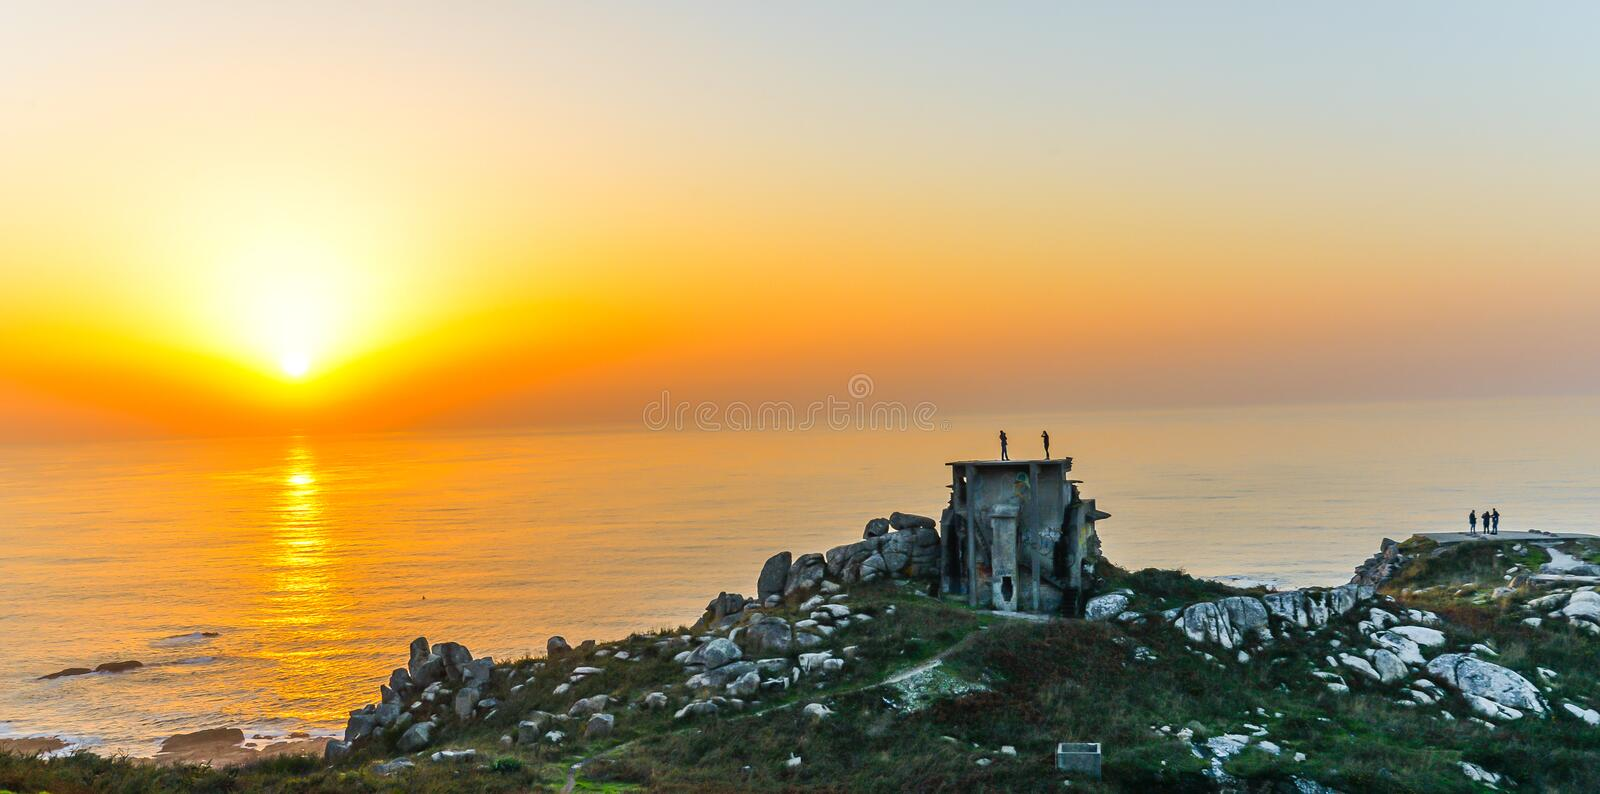 The old military base - Baiona. A sunset view of the abandoned remains of an old Spanish military base in the hills above Baiona - Galicia - Spain stock photos